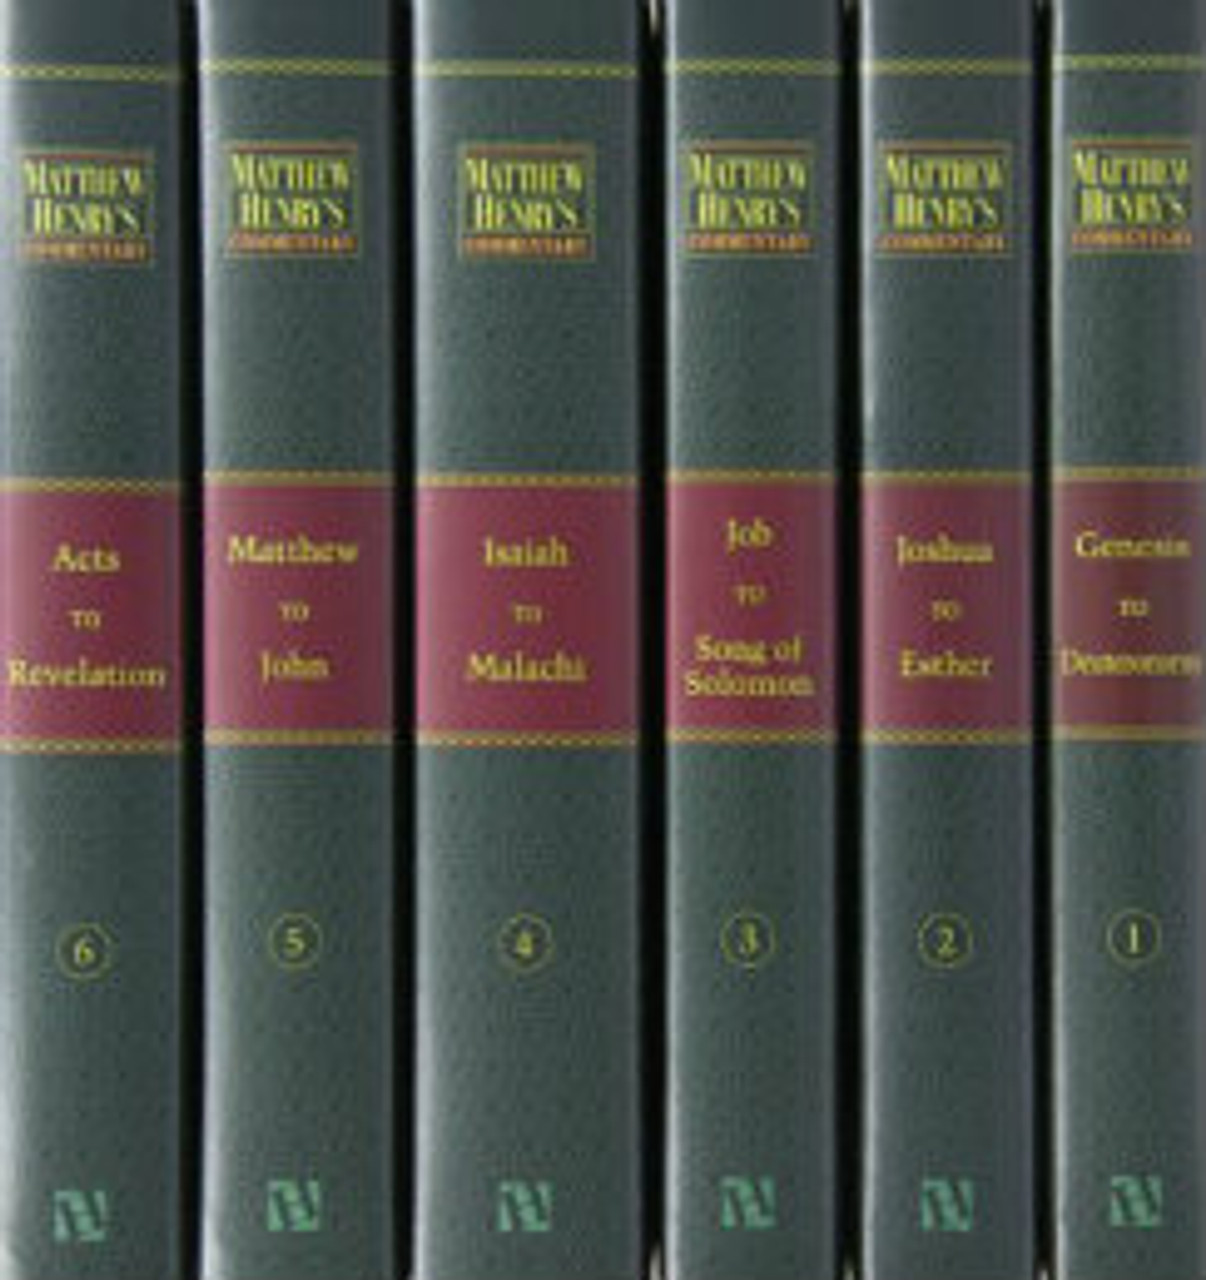 Matthew Henry's Commentary on the Whole Bible Unabridged, 6 Volumes (Hardcover Books)